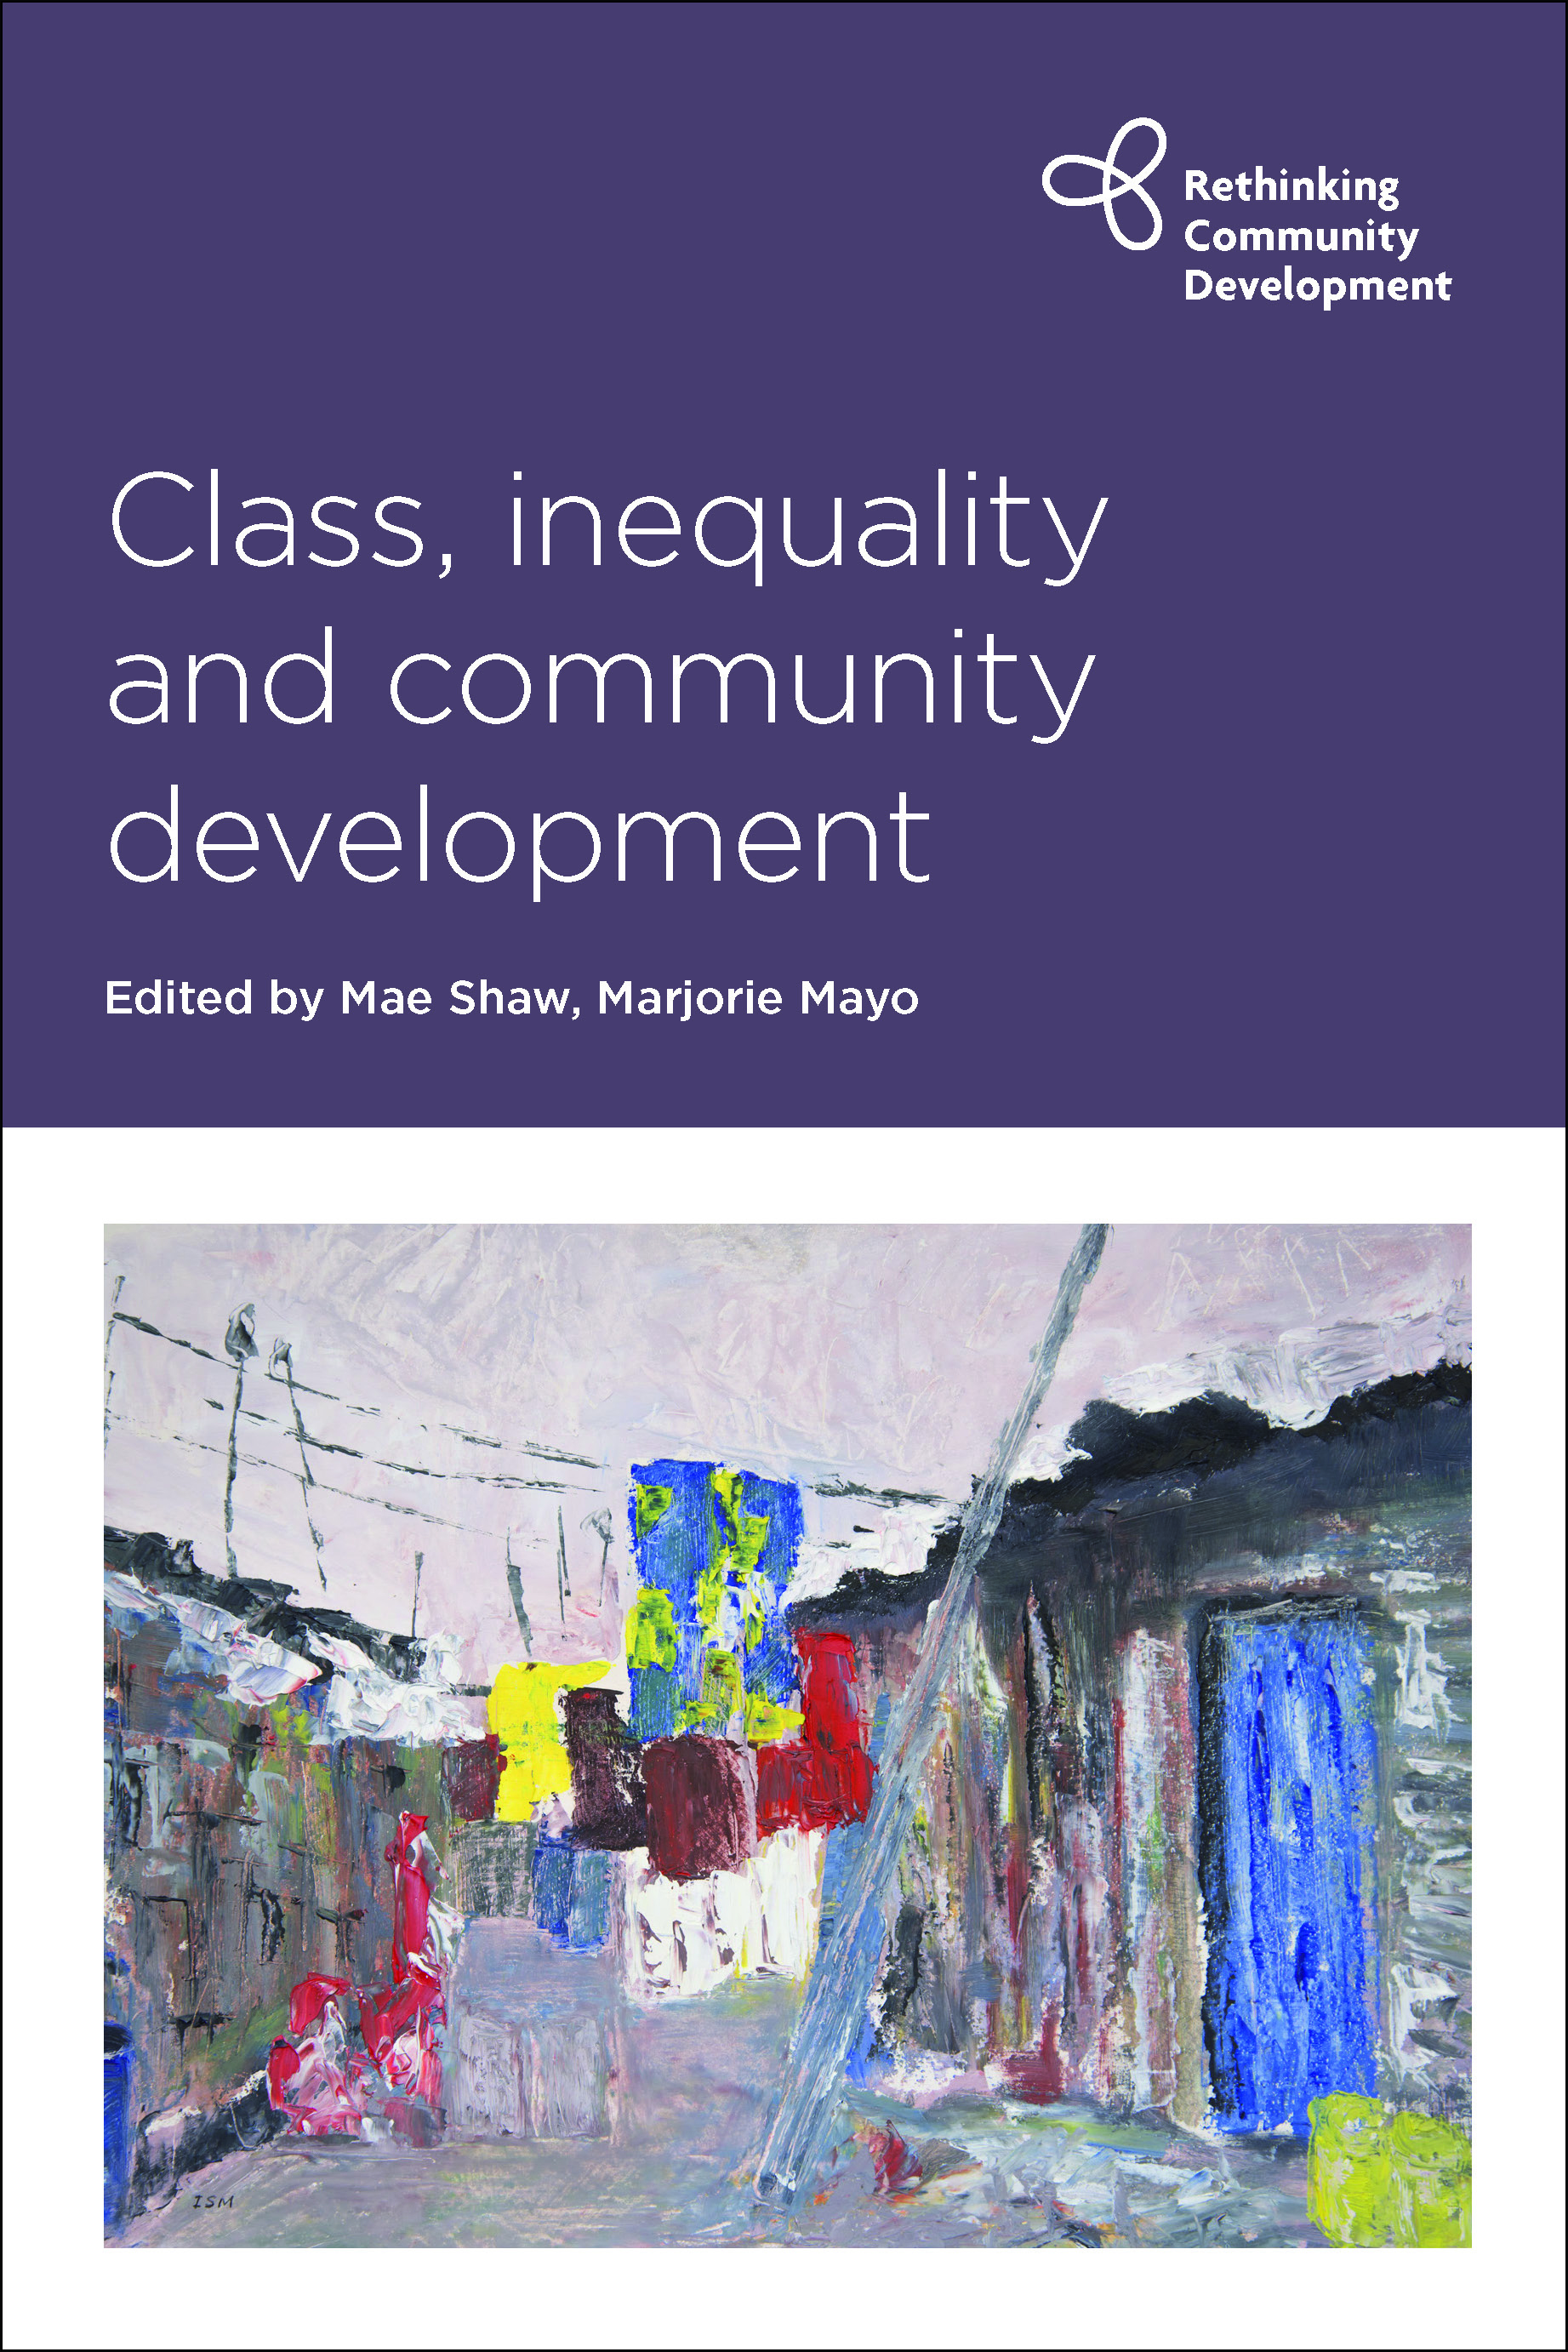 Series launch: Class and inequality: Rethinking community development in the age of austerity